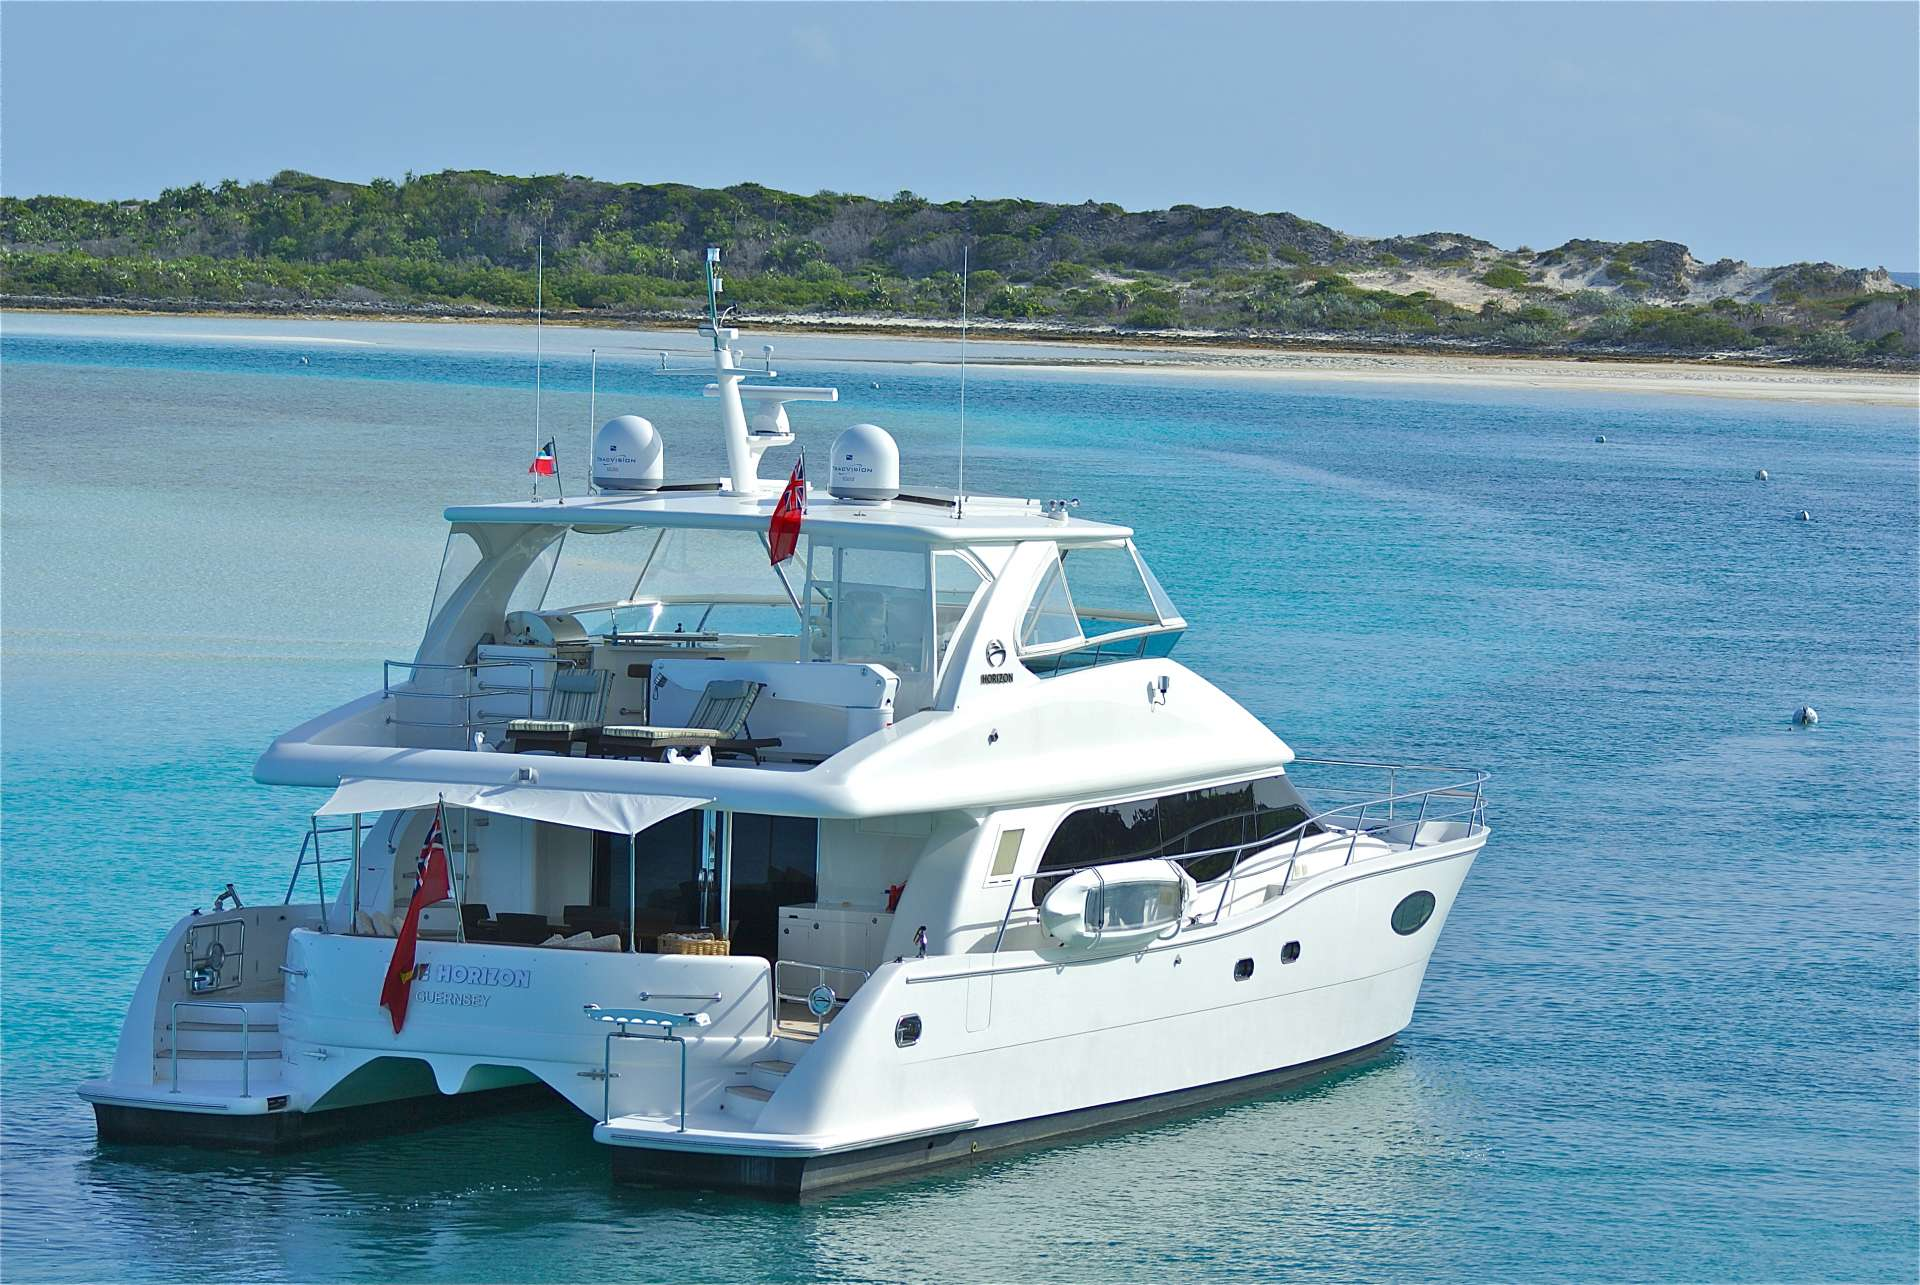 Charter with BLUE HORIZON on compassyachtcharters.com